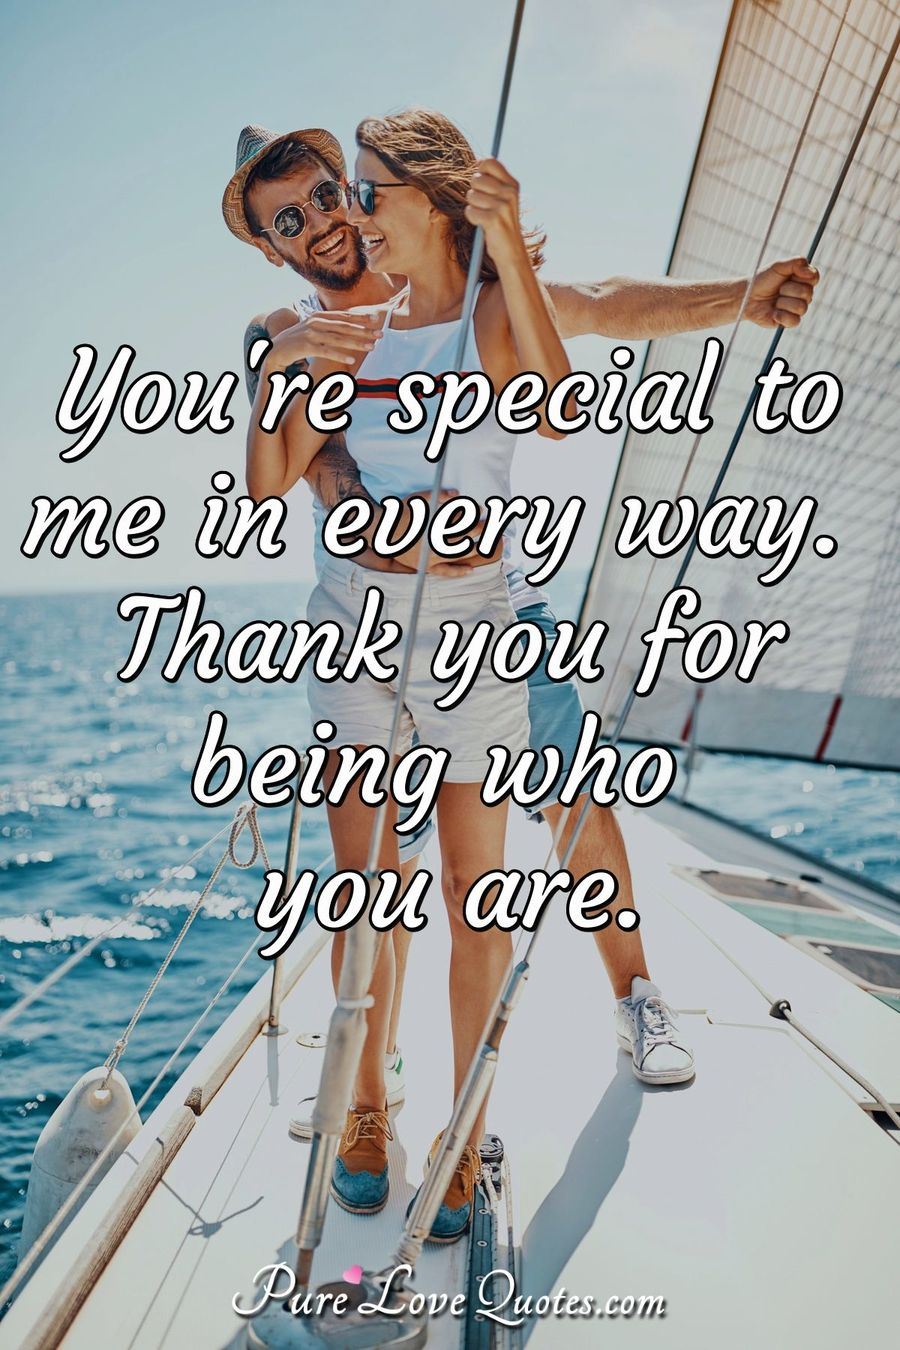 You Are Special Quotes: You're Special To Me In Every Way. Thank You For Being Who